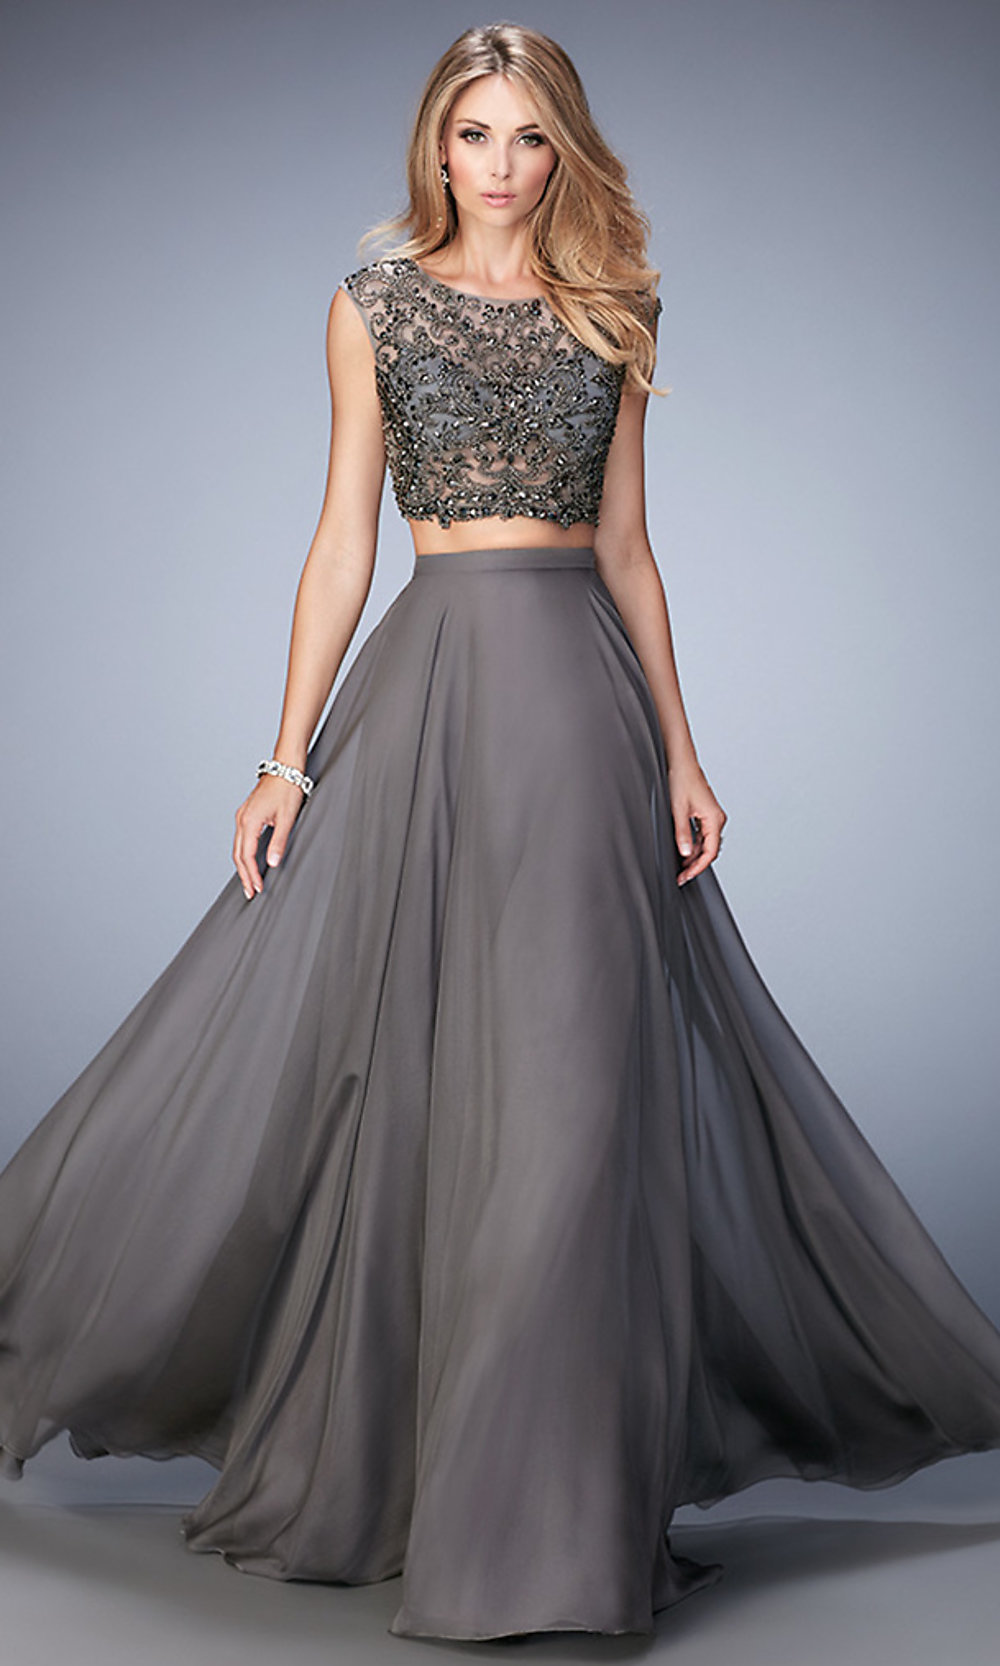 Long Two-Piece Gray La Femme Dress - PromGirl